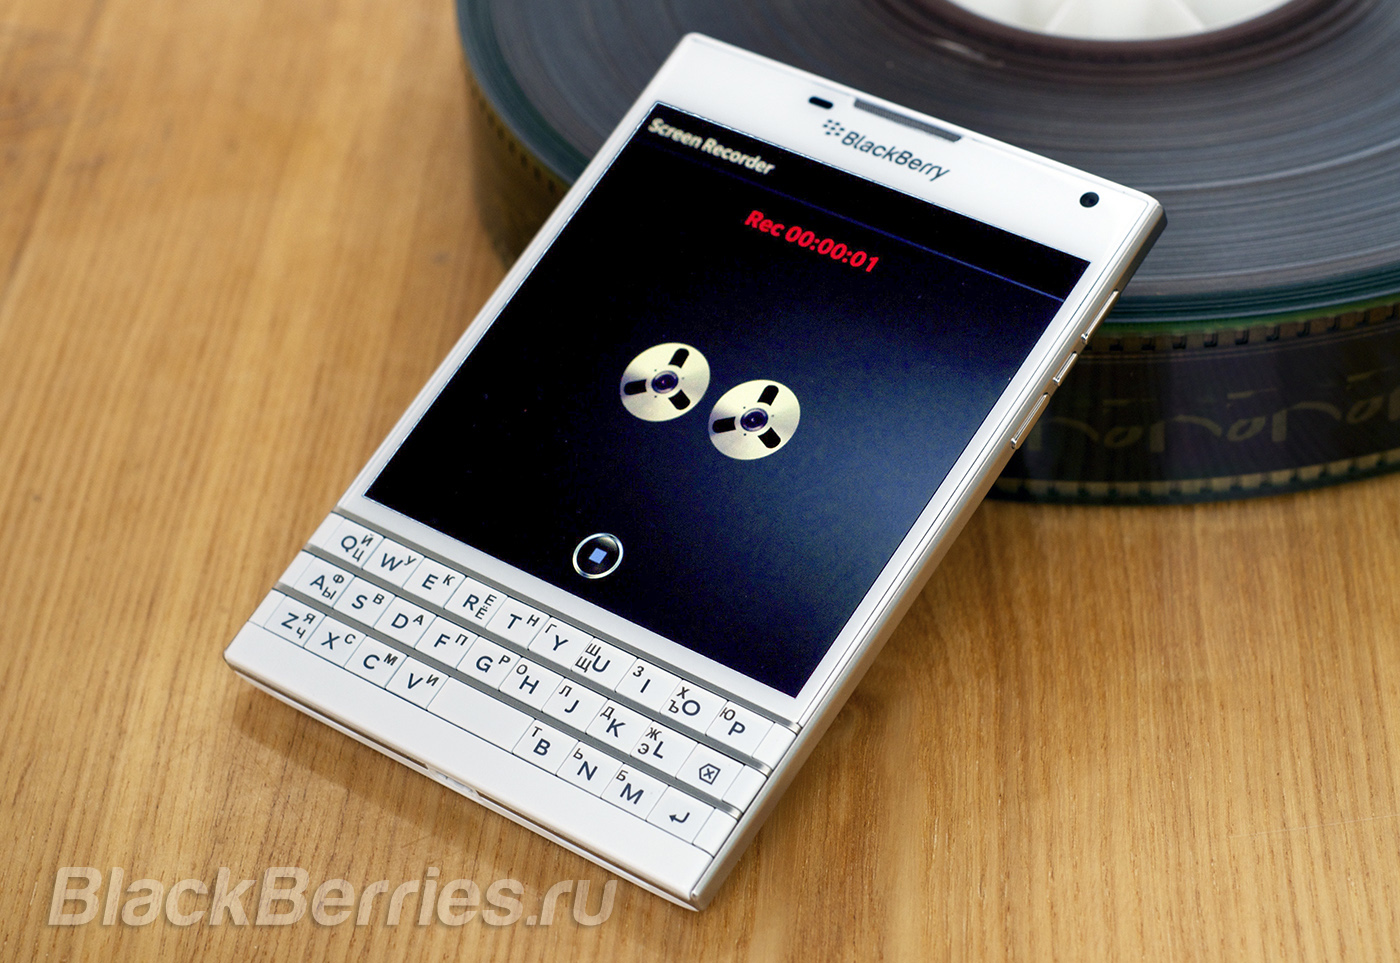 BlackBerry-Passport-App-23-05-24